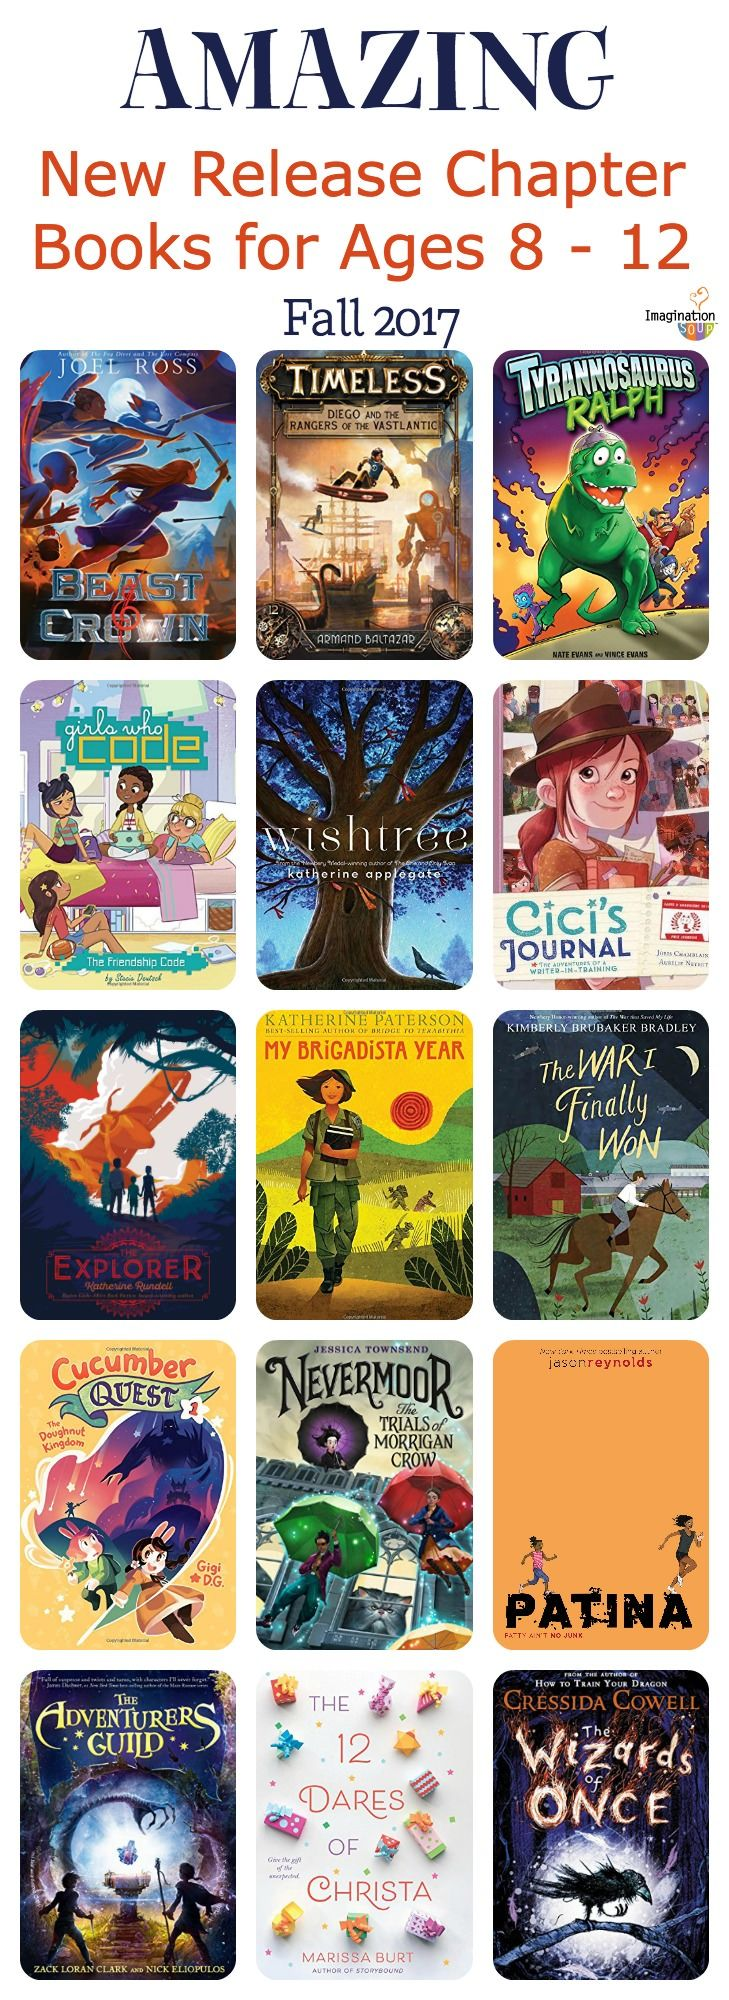 newly published chapter books for ages 8 to 12 that are AWESOME!